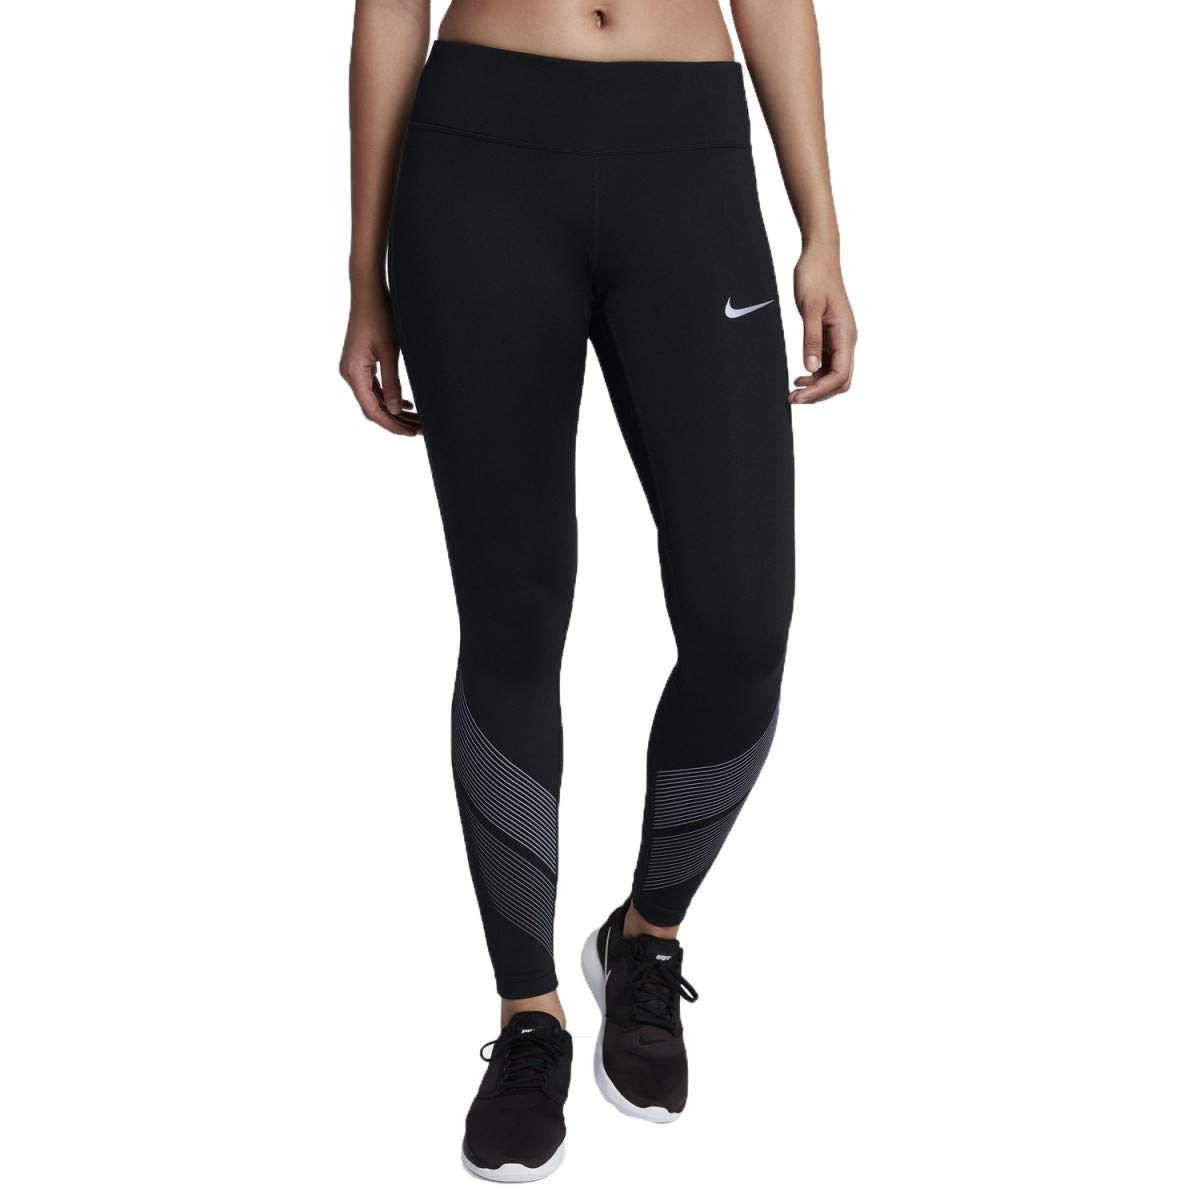 Nike Women's Power Flash Running Tights-Black-XS